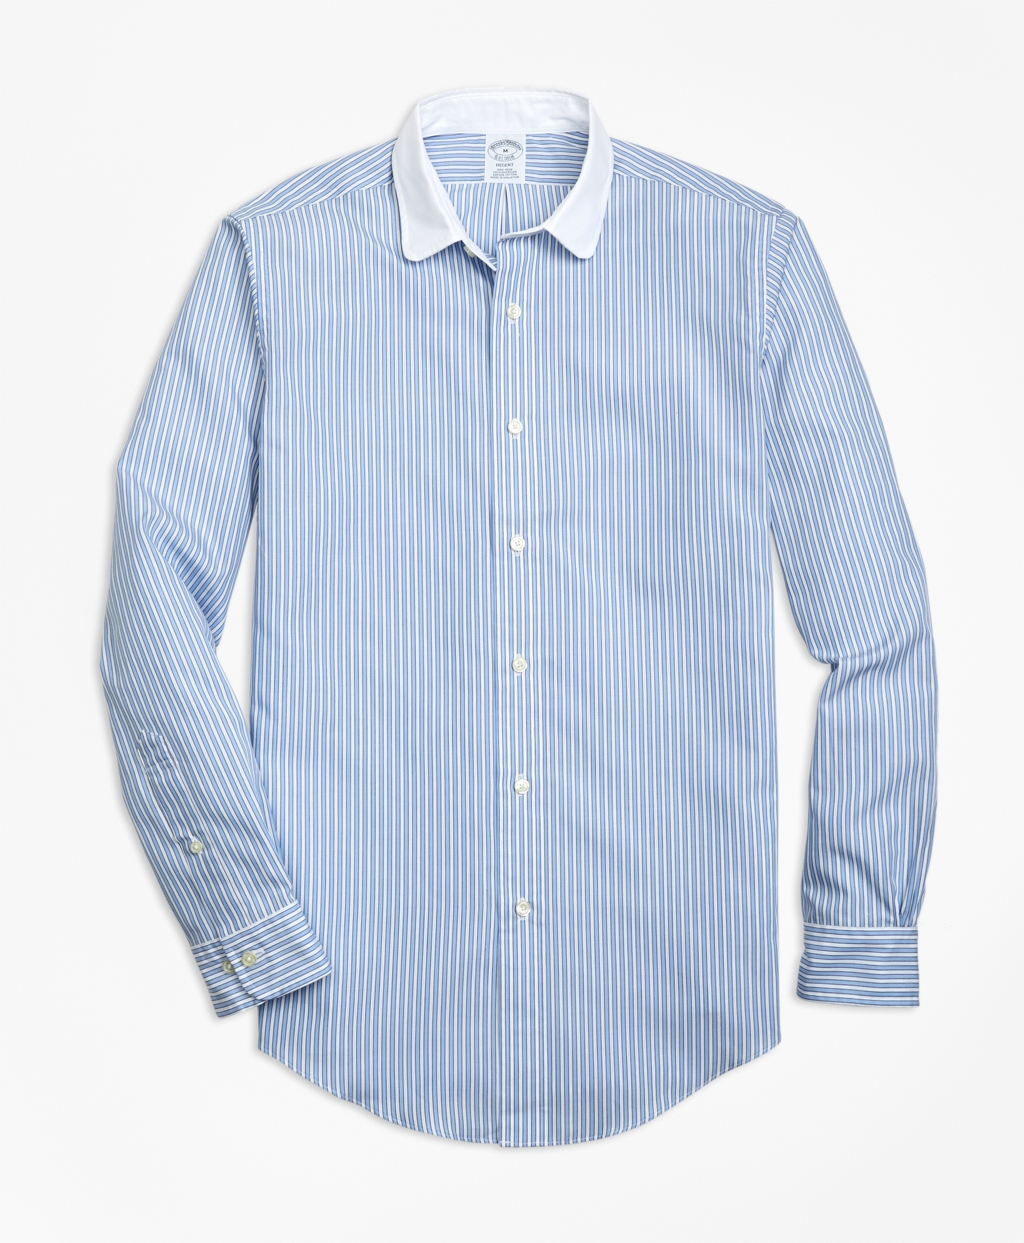 1920s Style Mens Shirts | Peaky Blinders Shirts and Collars Brooks Brothers Regent Fit Outlined Stripe Sport Shirt $92.00 AT vintagedancer.com